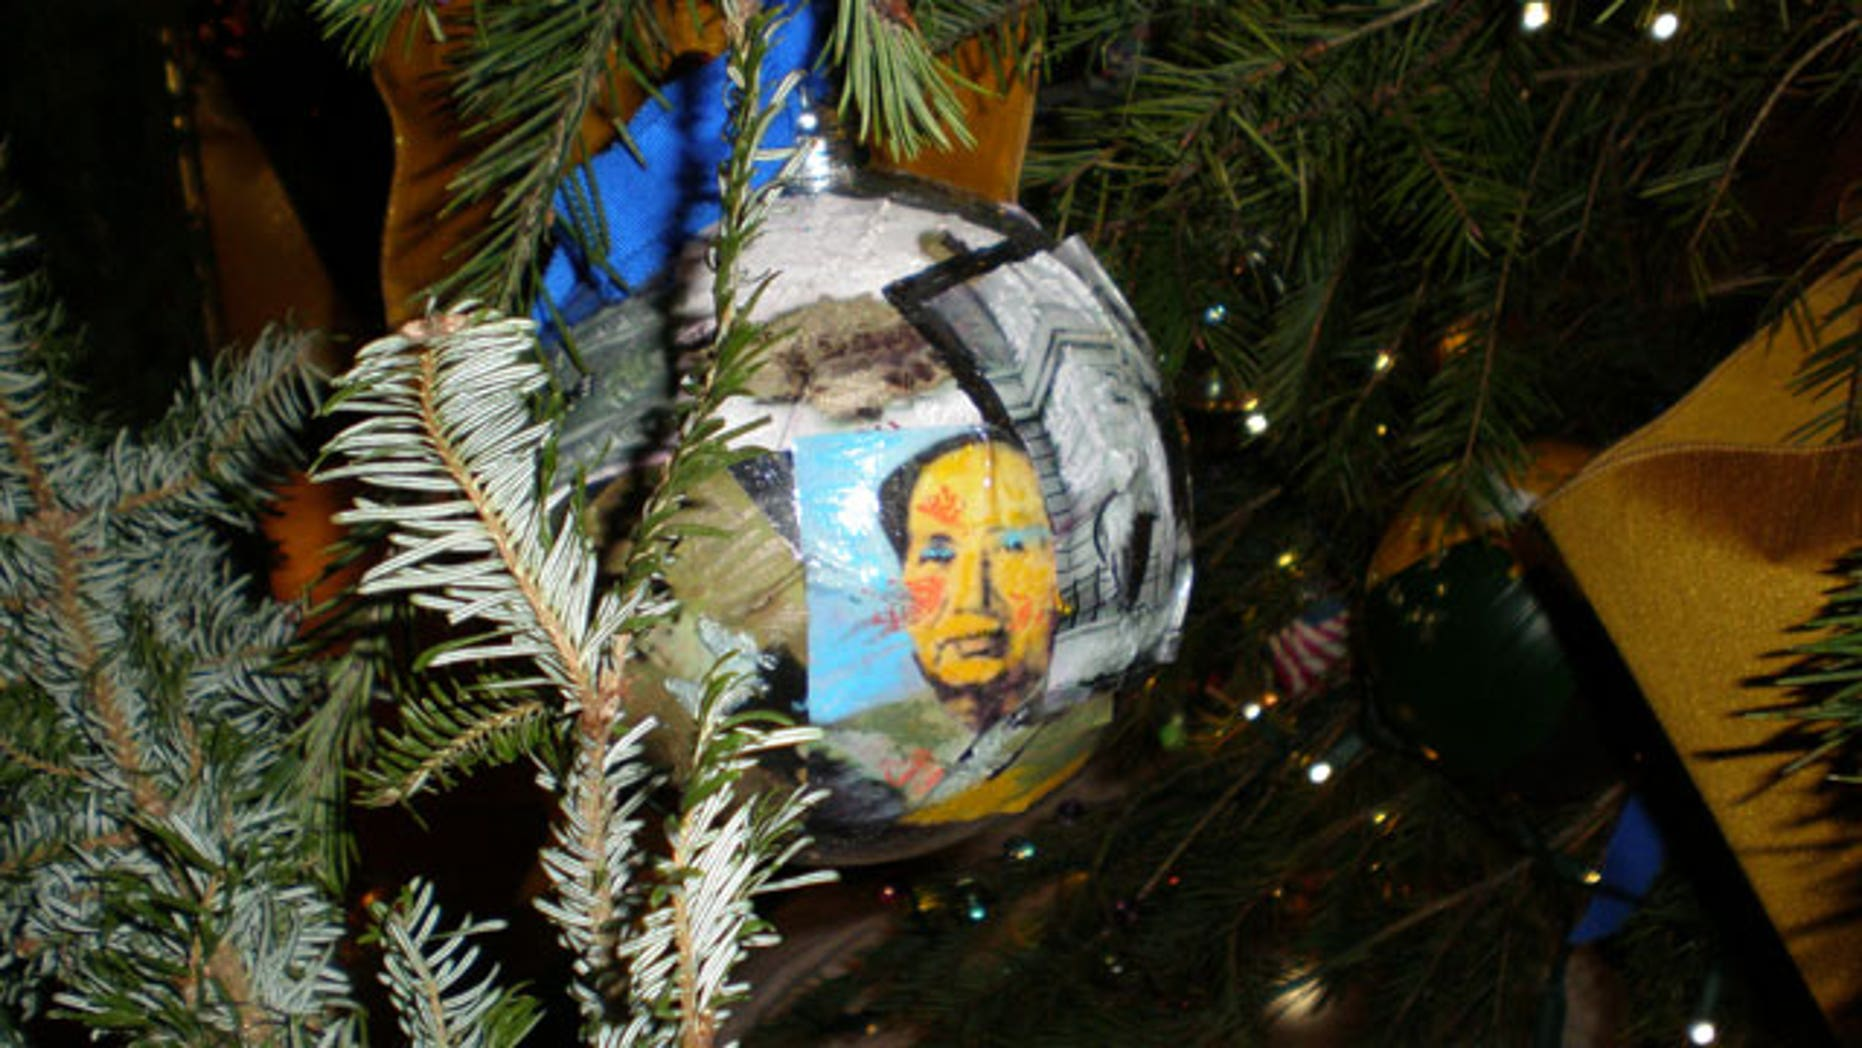 white house christmas decor featuring mao zedong comes under fire - Obama Christmas Decorations